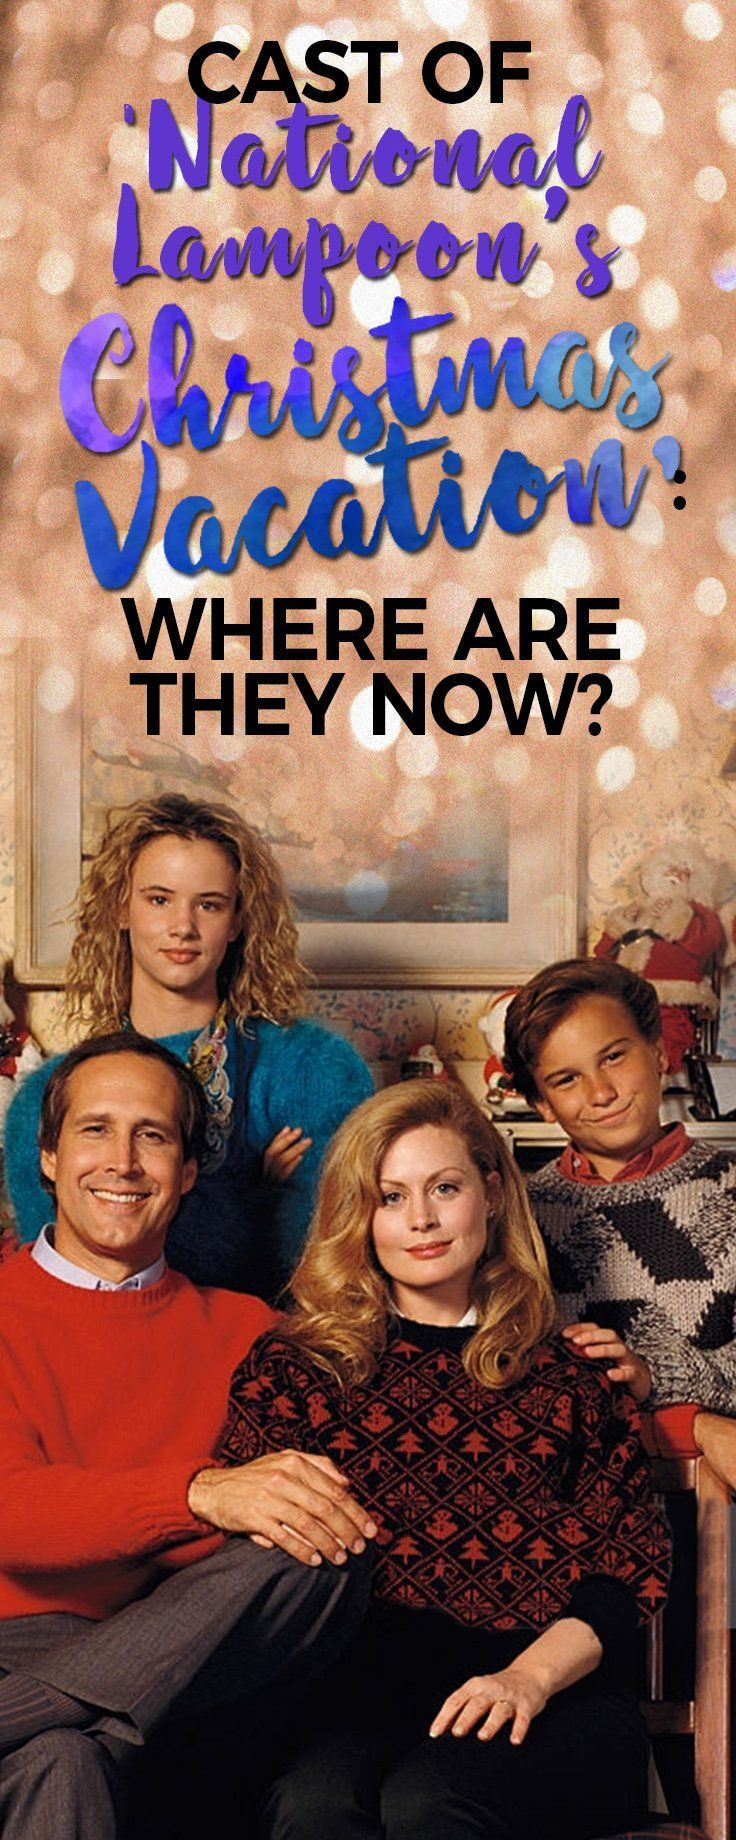 We may wonder where could these actors and actresses be? Like the old 'National Lampoons Christmas Vacation' cast. Take a look and find out. #homeimprovementcast,